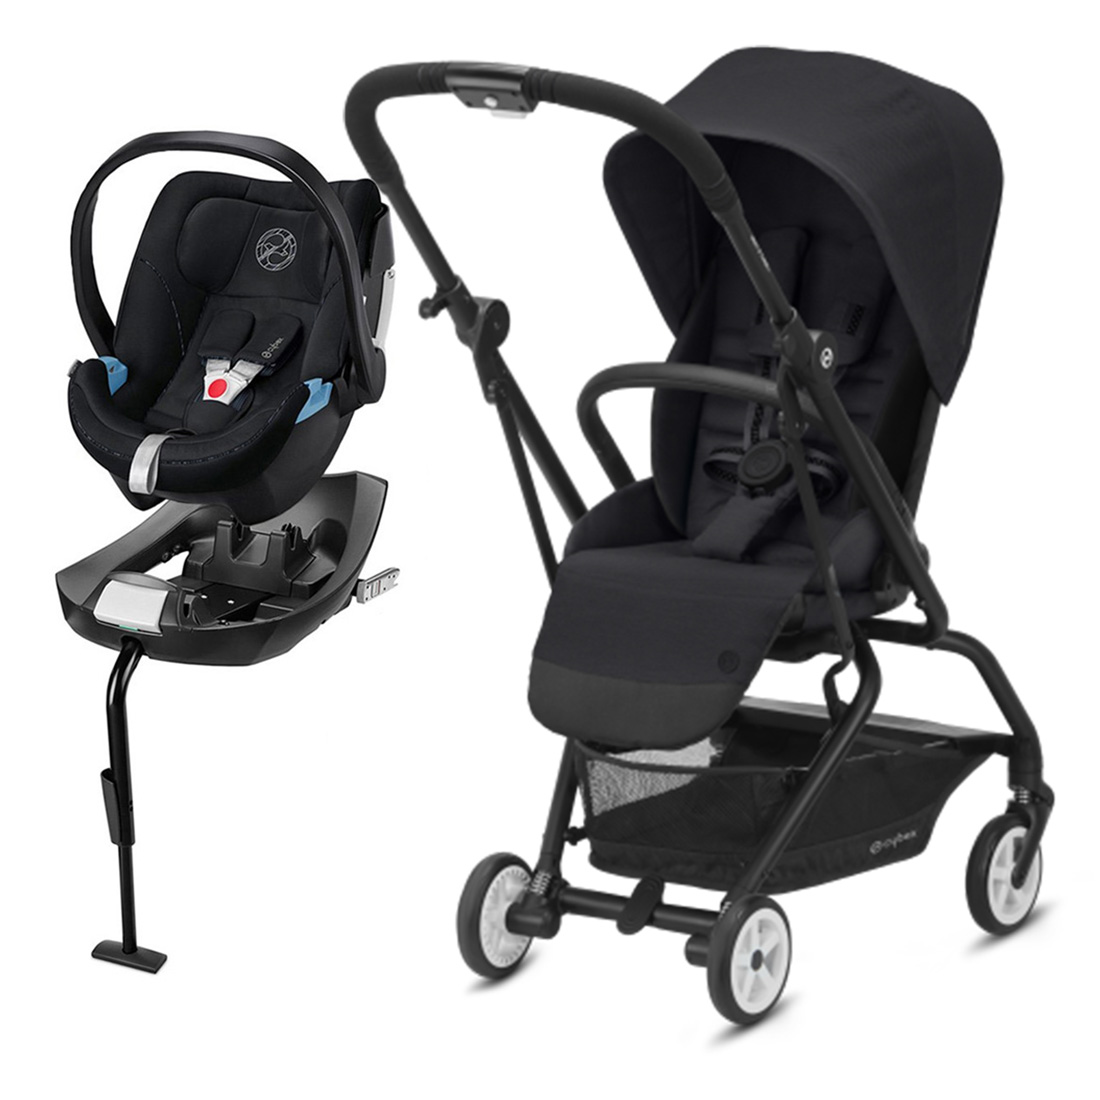 Coche Travel System Eezy S TW v2 DB + Aton5 + Base